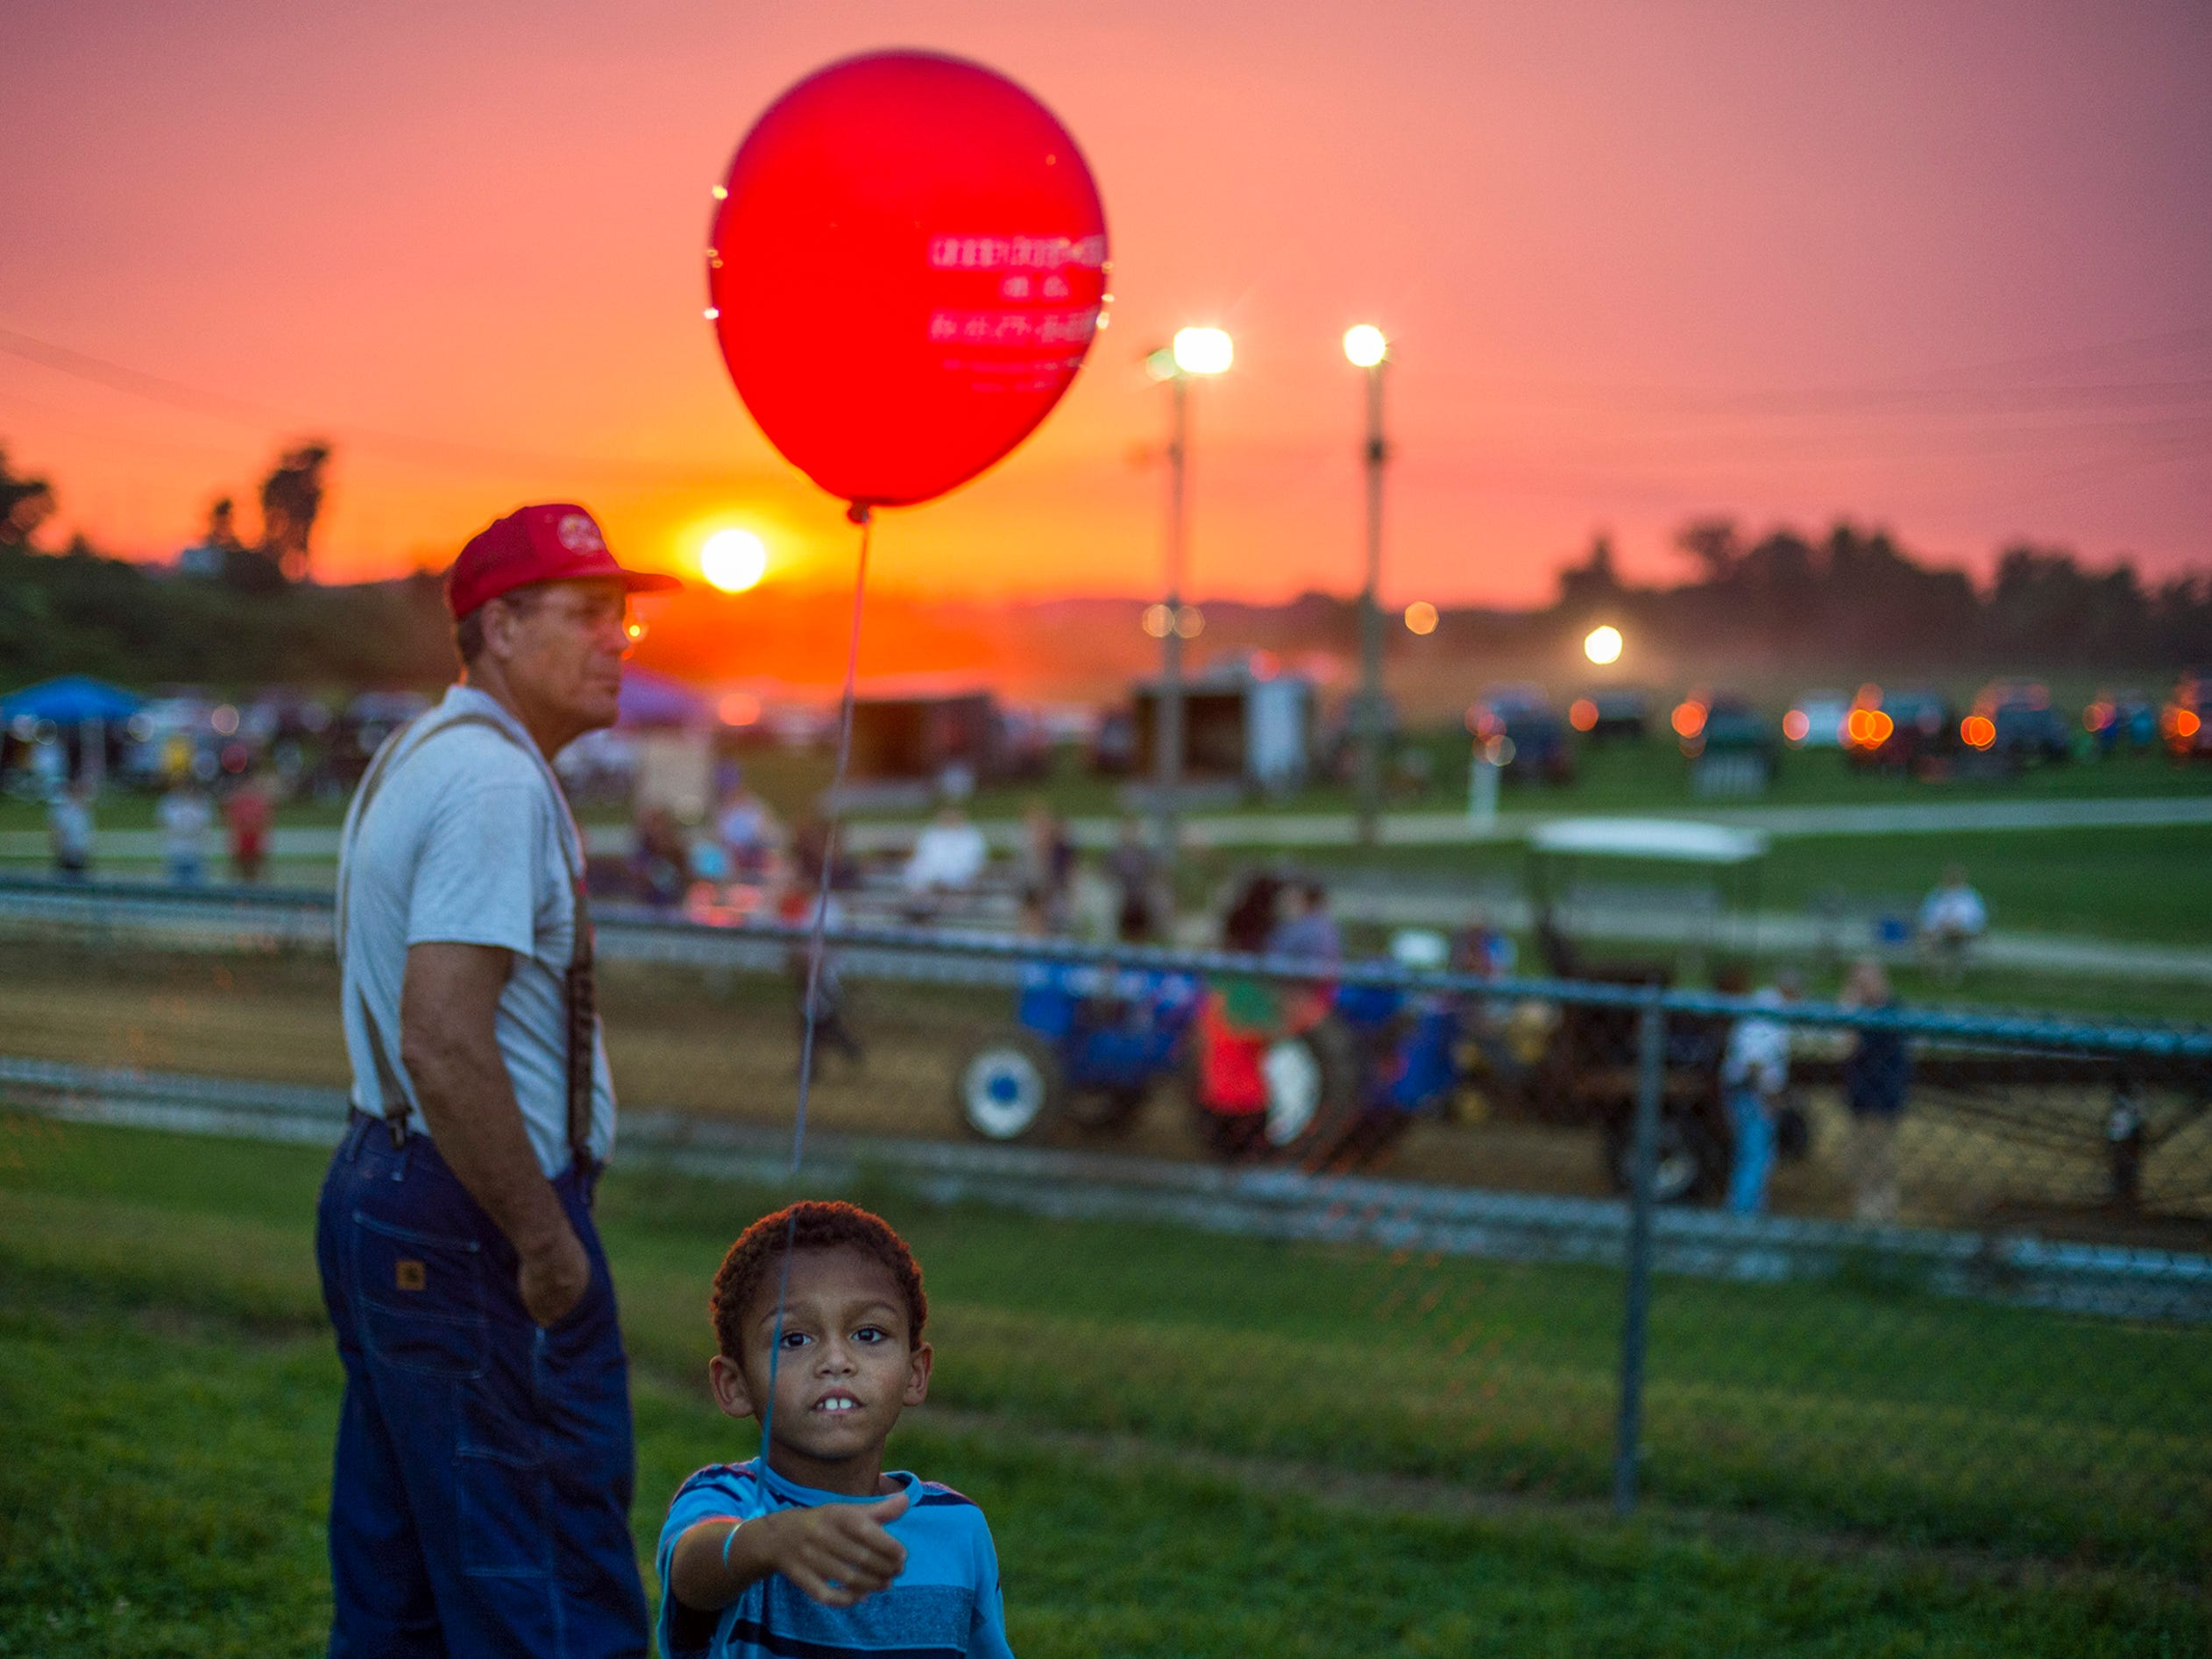 A boy carries a ballon during a tractor pull competition on opening day of the Salem County Fair Tuesday, Aug. 7, 2018 in Woodstown, N.J.